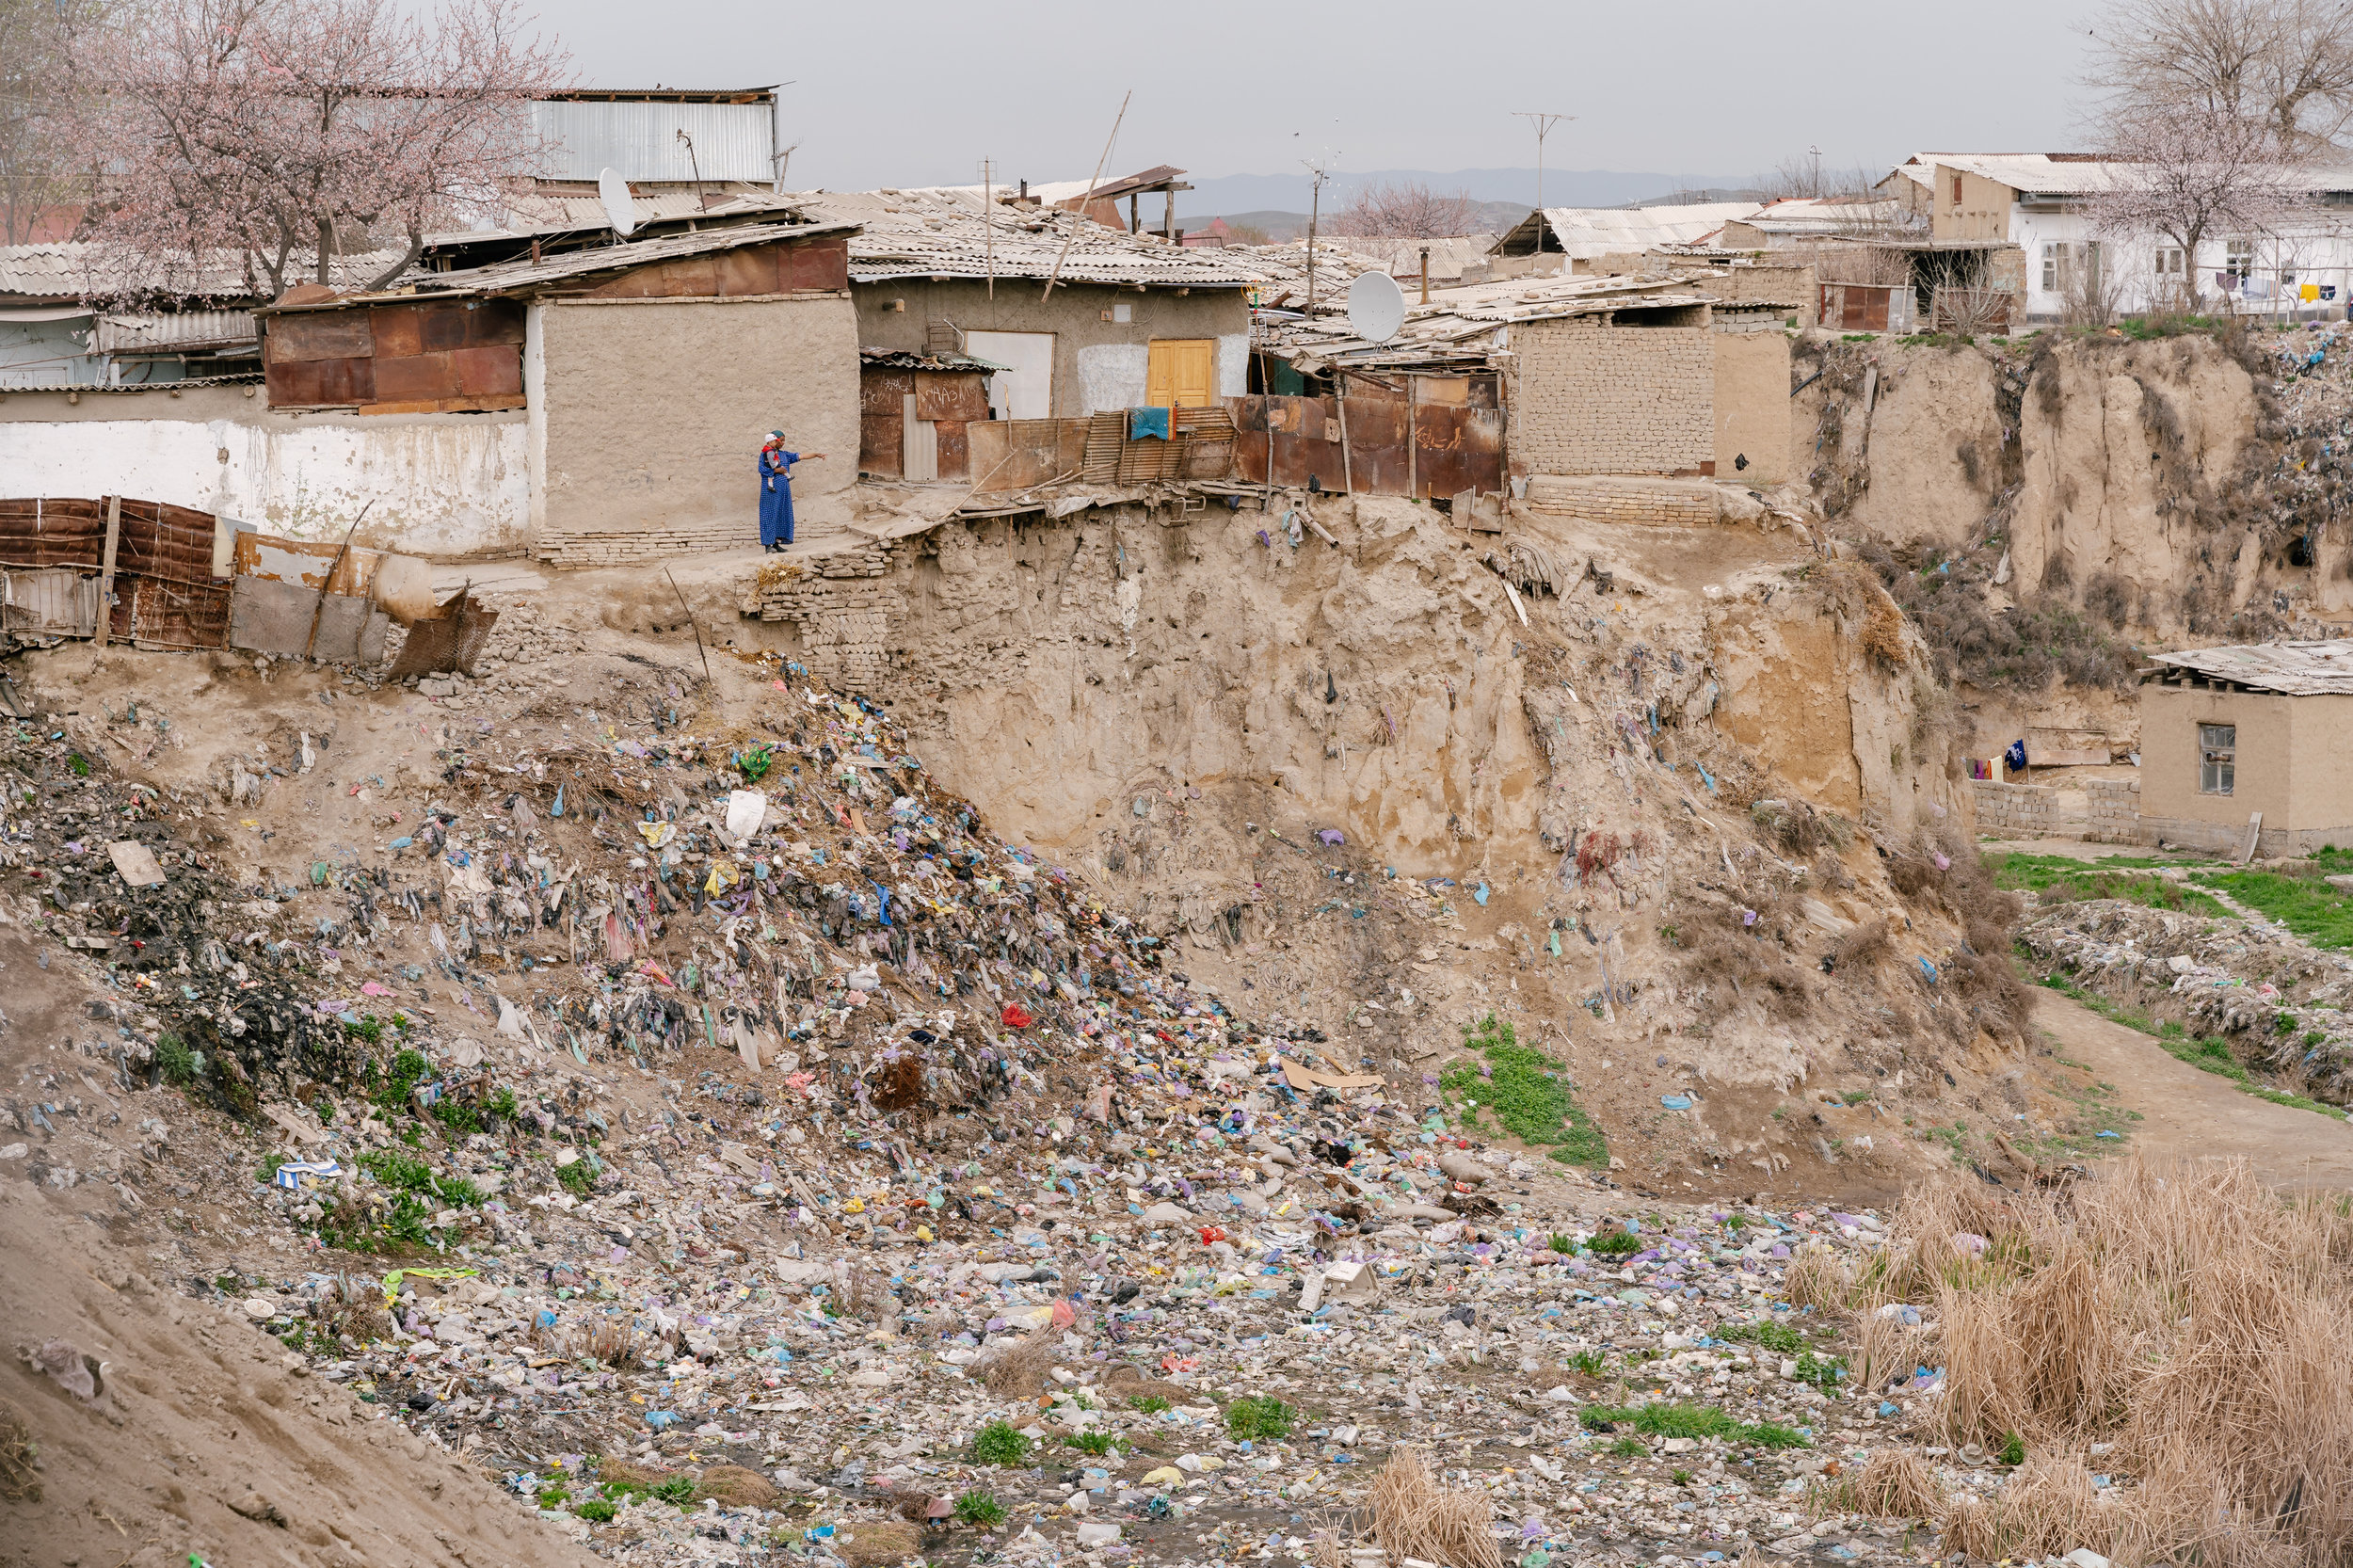 Landfill in the poorer part of the city.